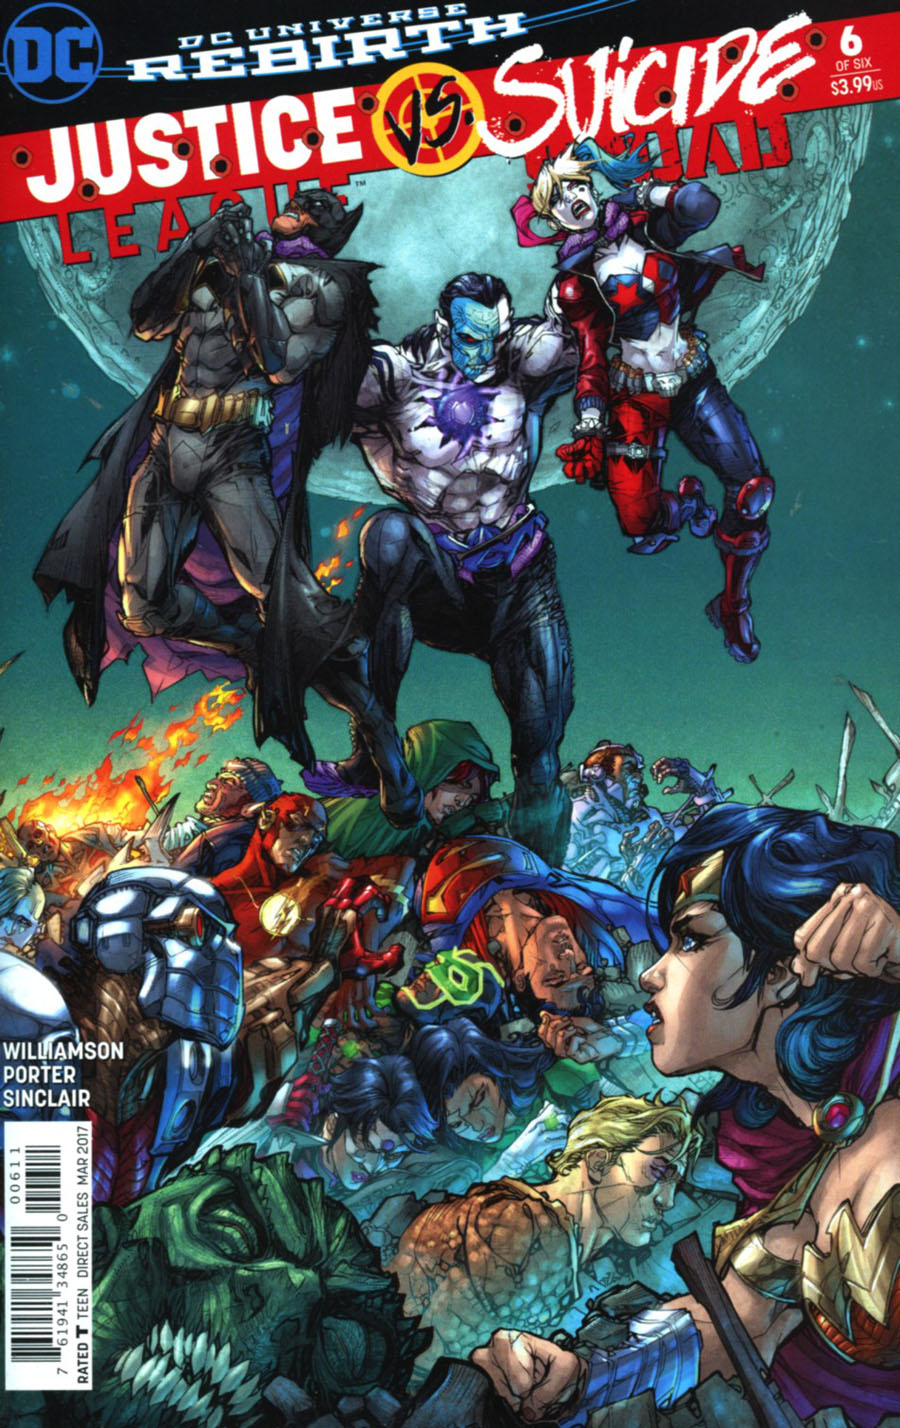 Justice League vs. Suicide Squad #6